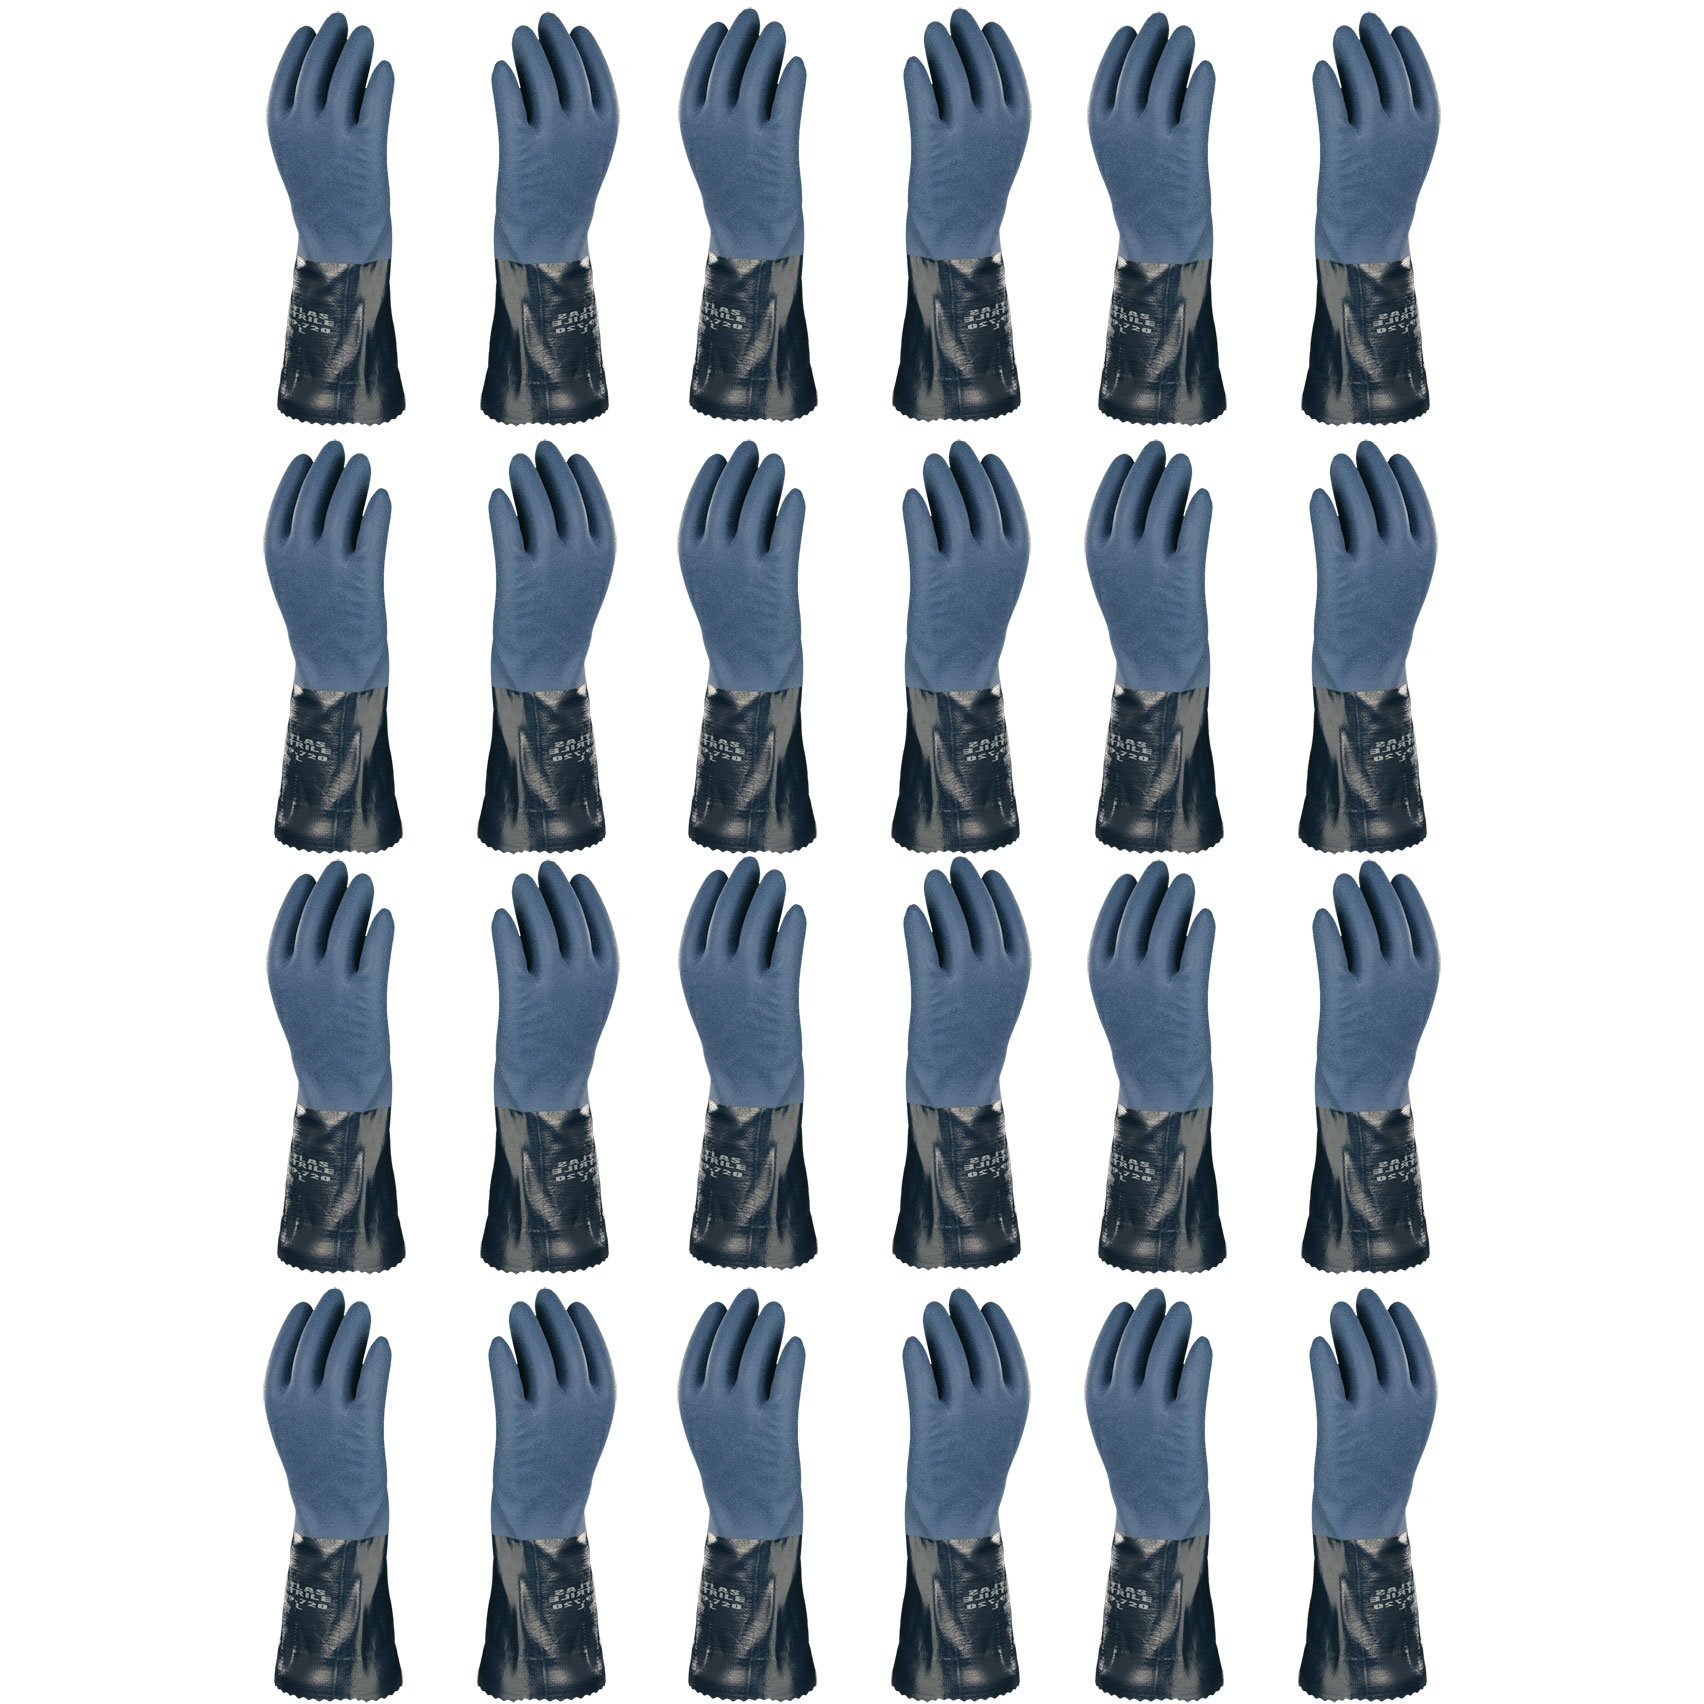 Atlas 720 Dipped-Nitrile Blue Chemical Resistant Small Work Gloves, 12-Pairs